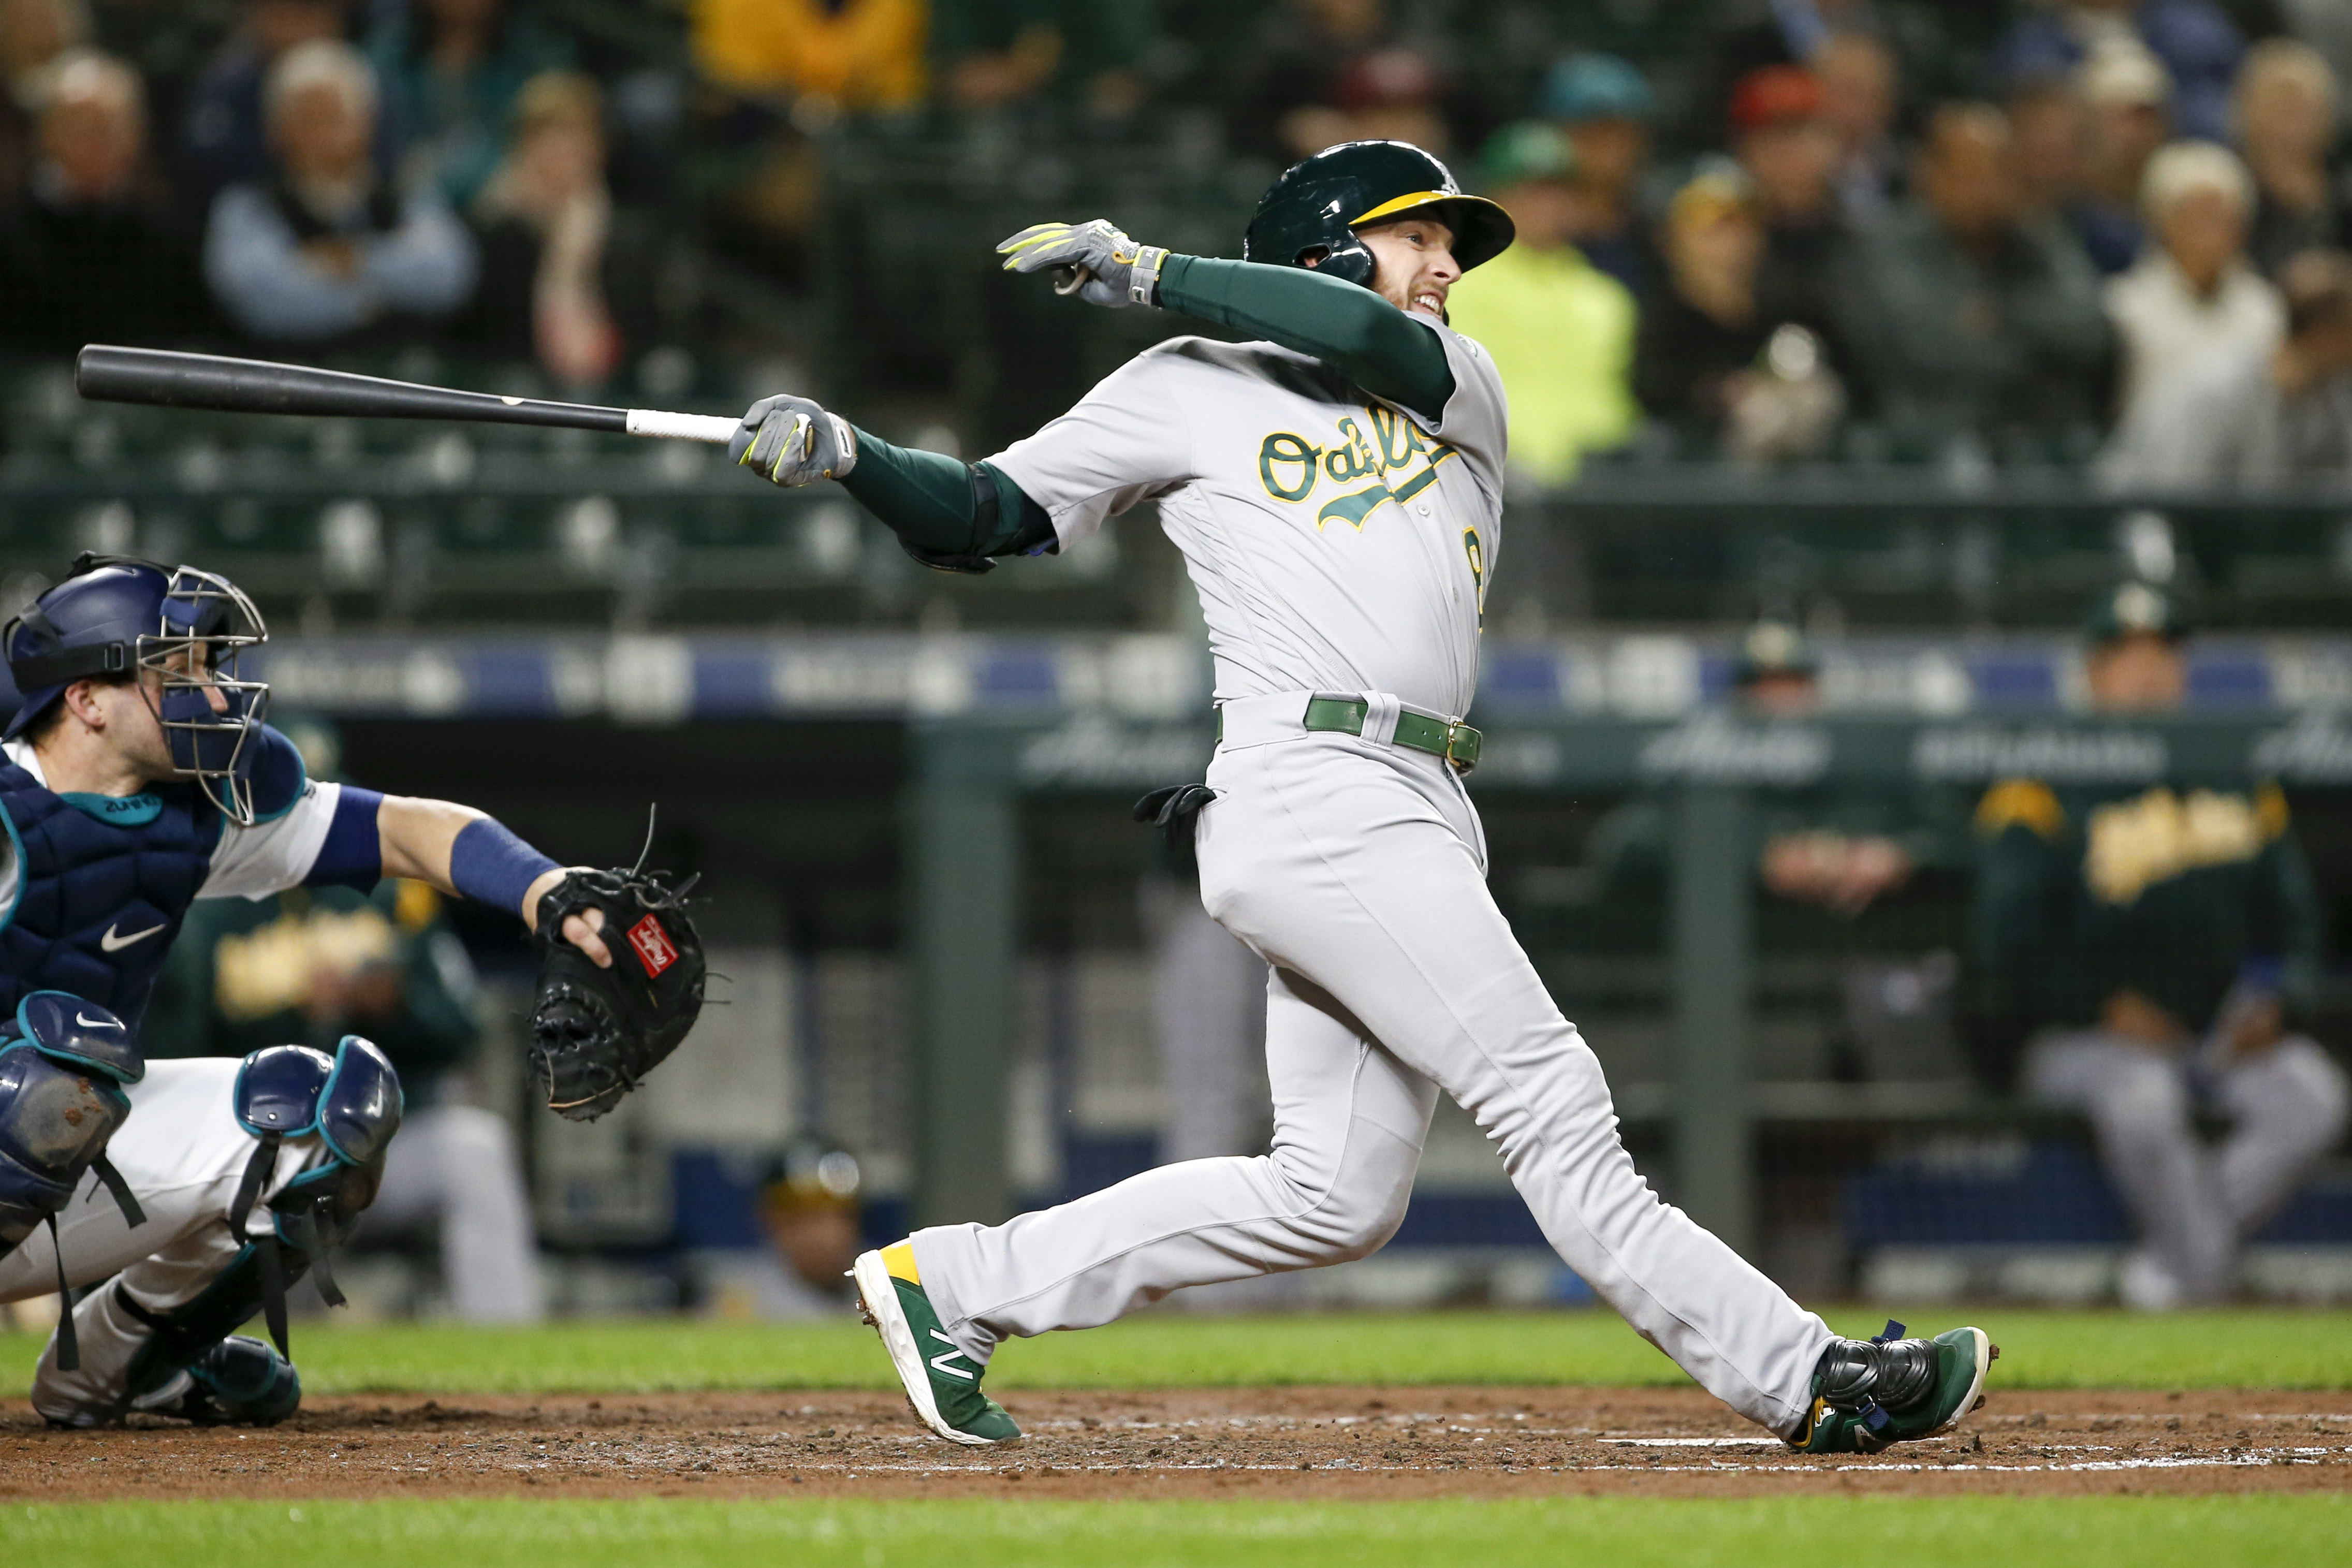 Report: New York Mets Sign Jed Lowrie To Two Year Deal